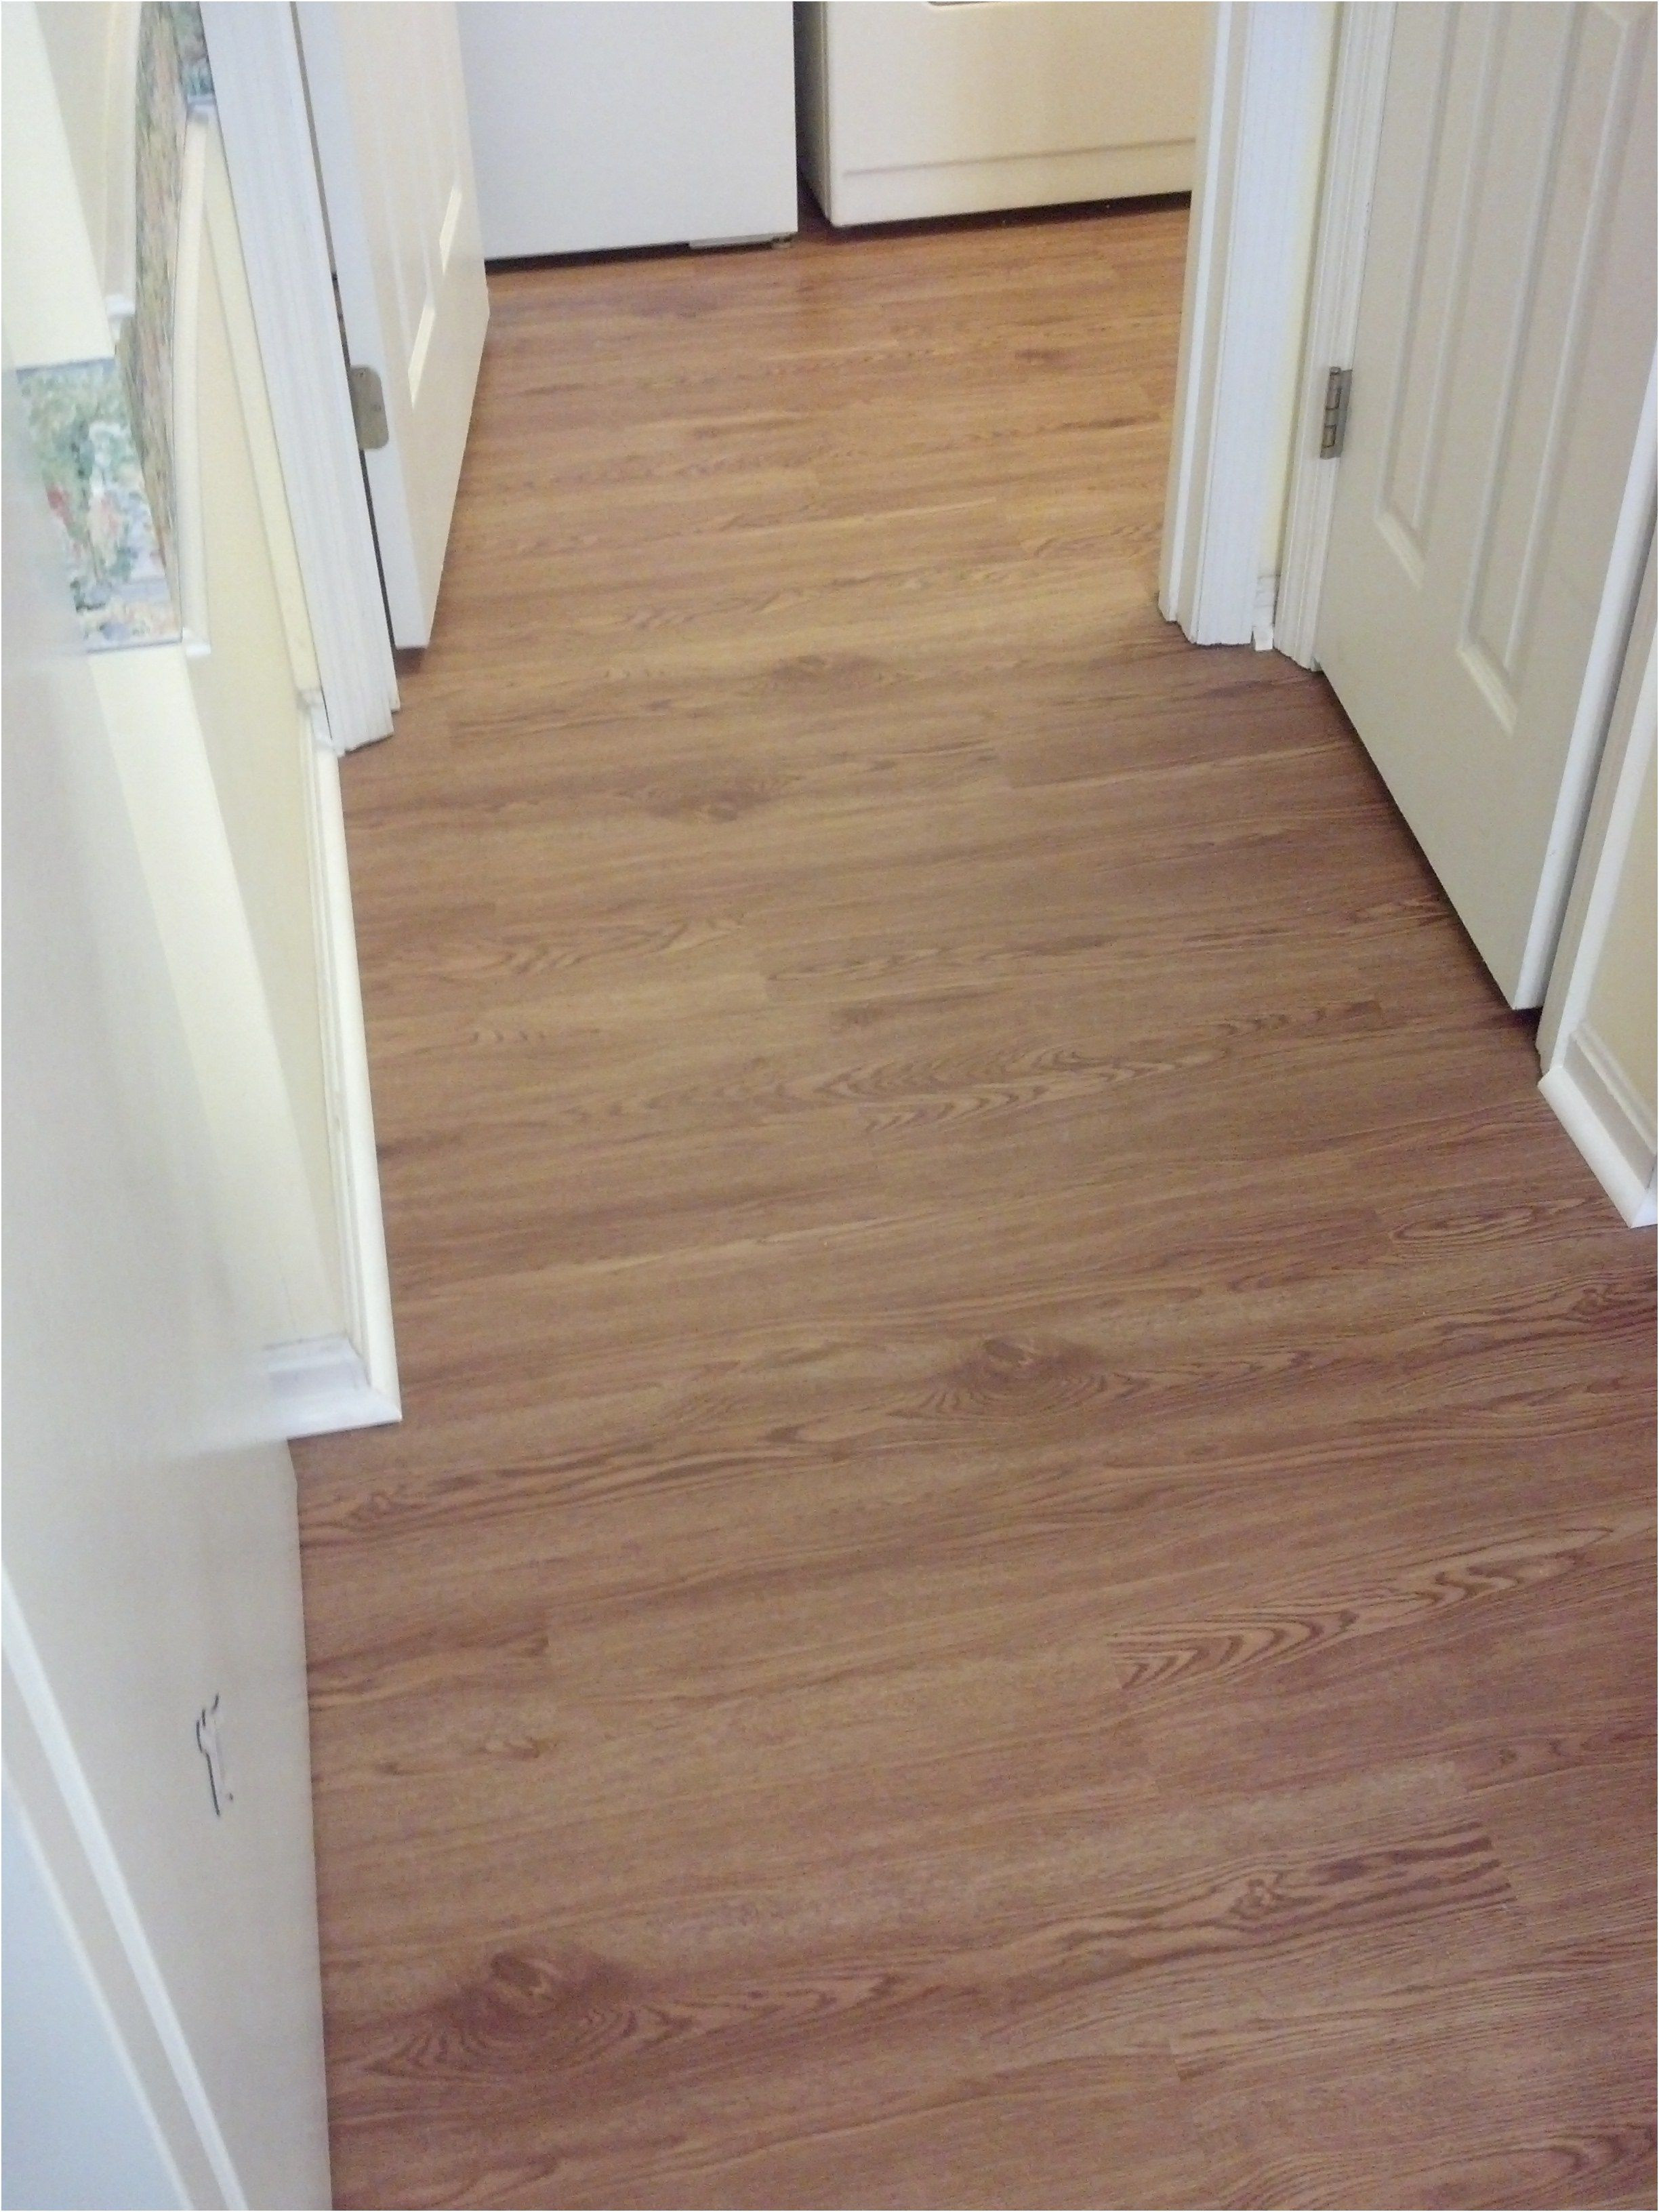 unfinished hardwood flooring near me of wood floor contractors floor plan ideas regarding flooring sale near me stock 0d grace place barnegat nj inspiration flooring sale near me hardwood